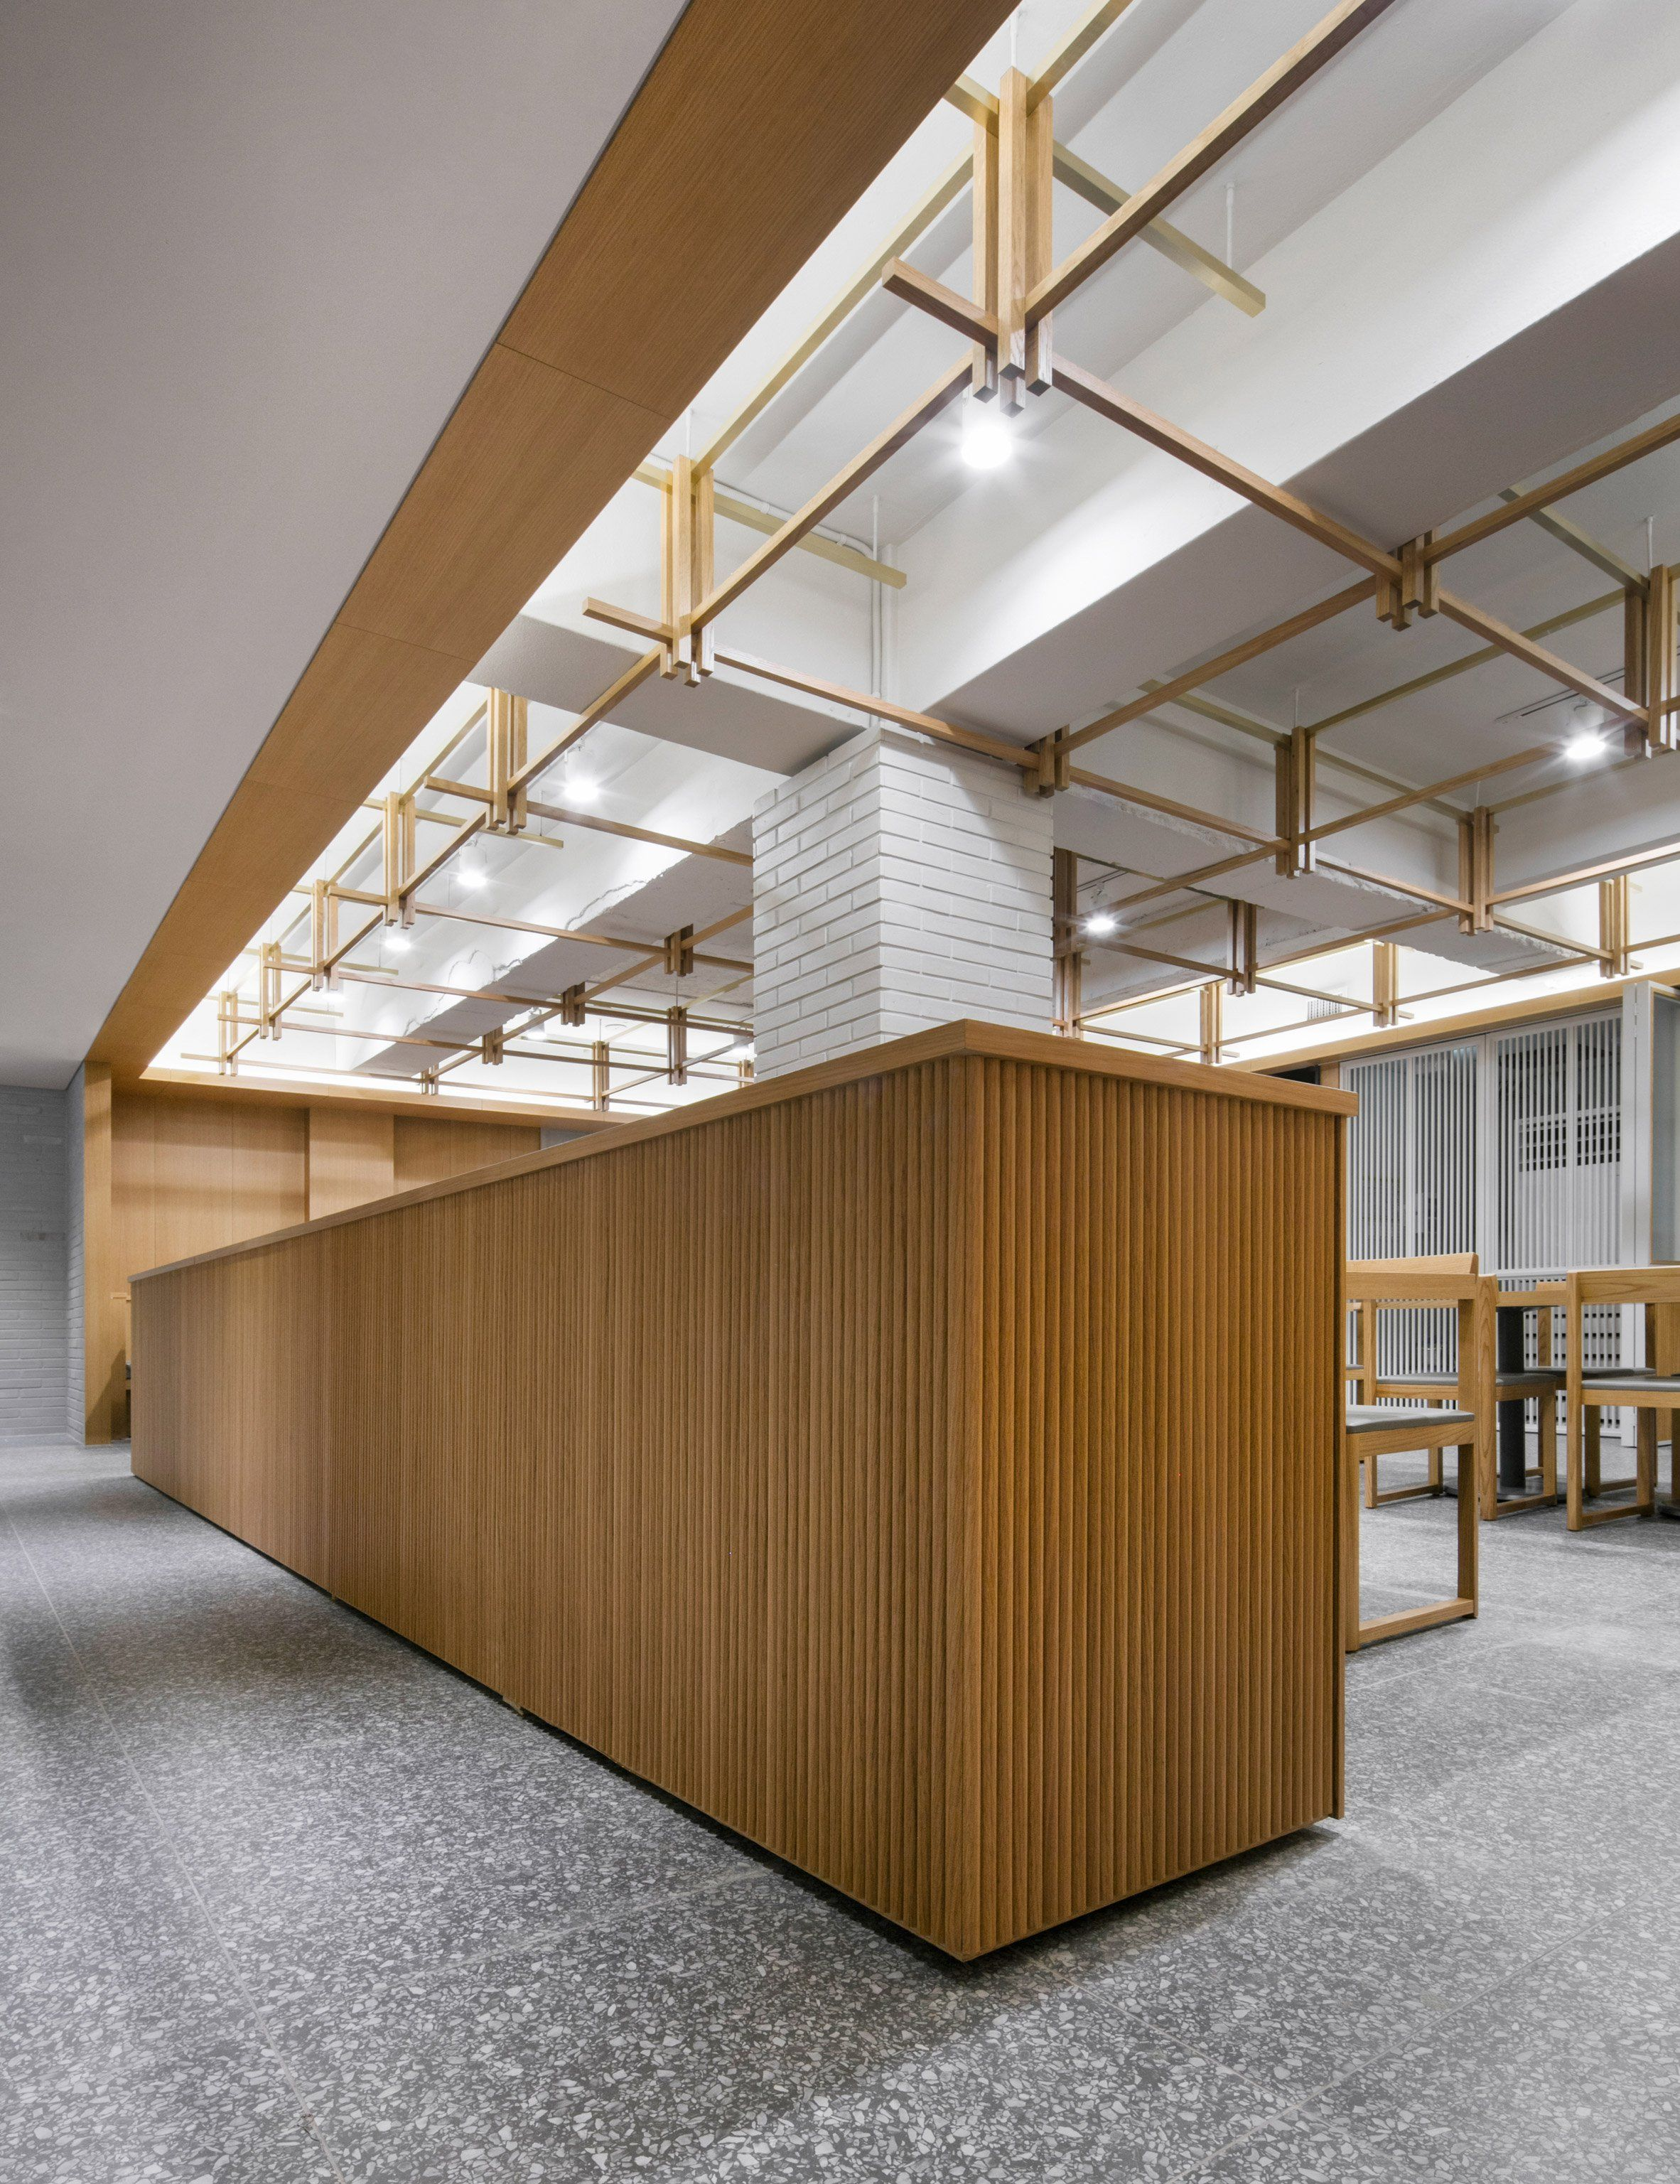 Wood Paneled Office: Wood-panelled Seoul Restaurant Interior References Owner's